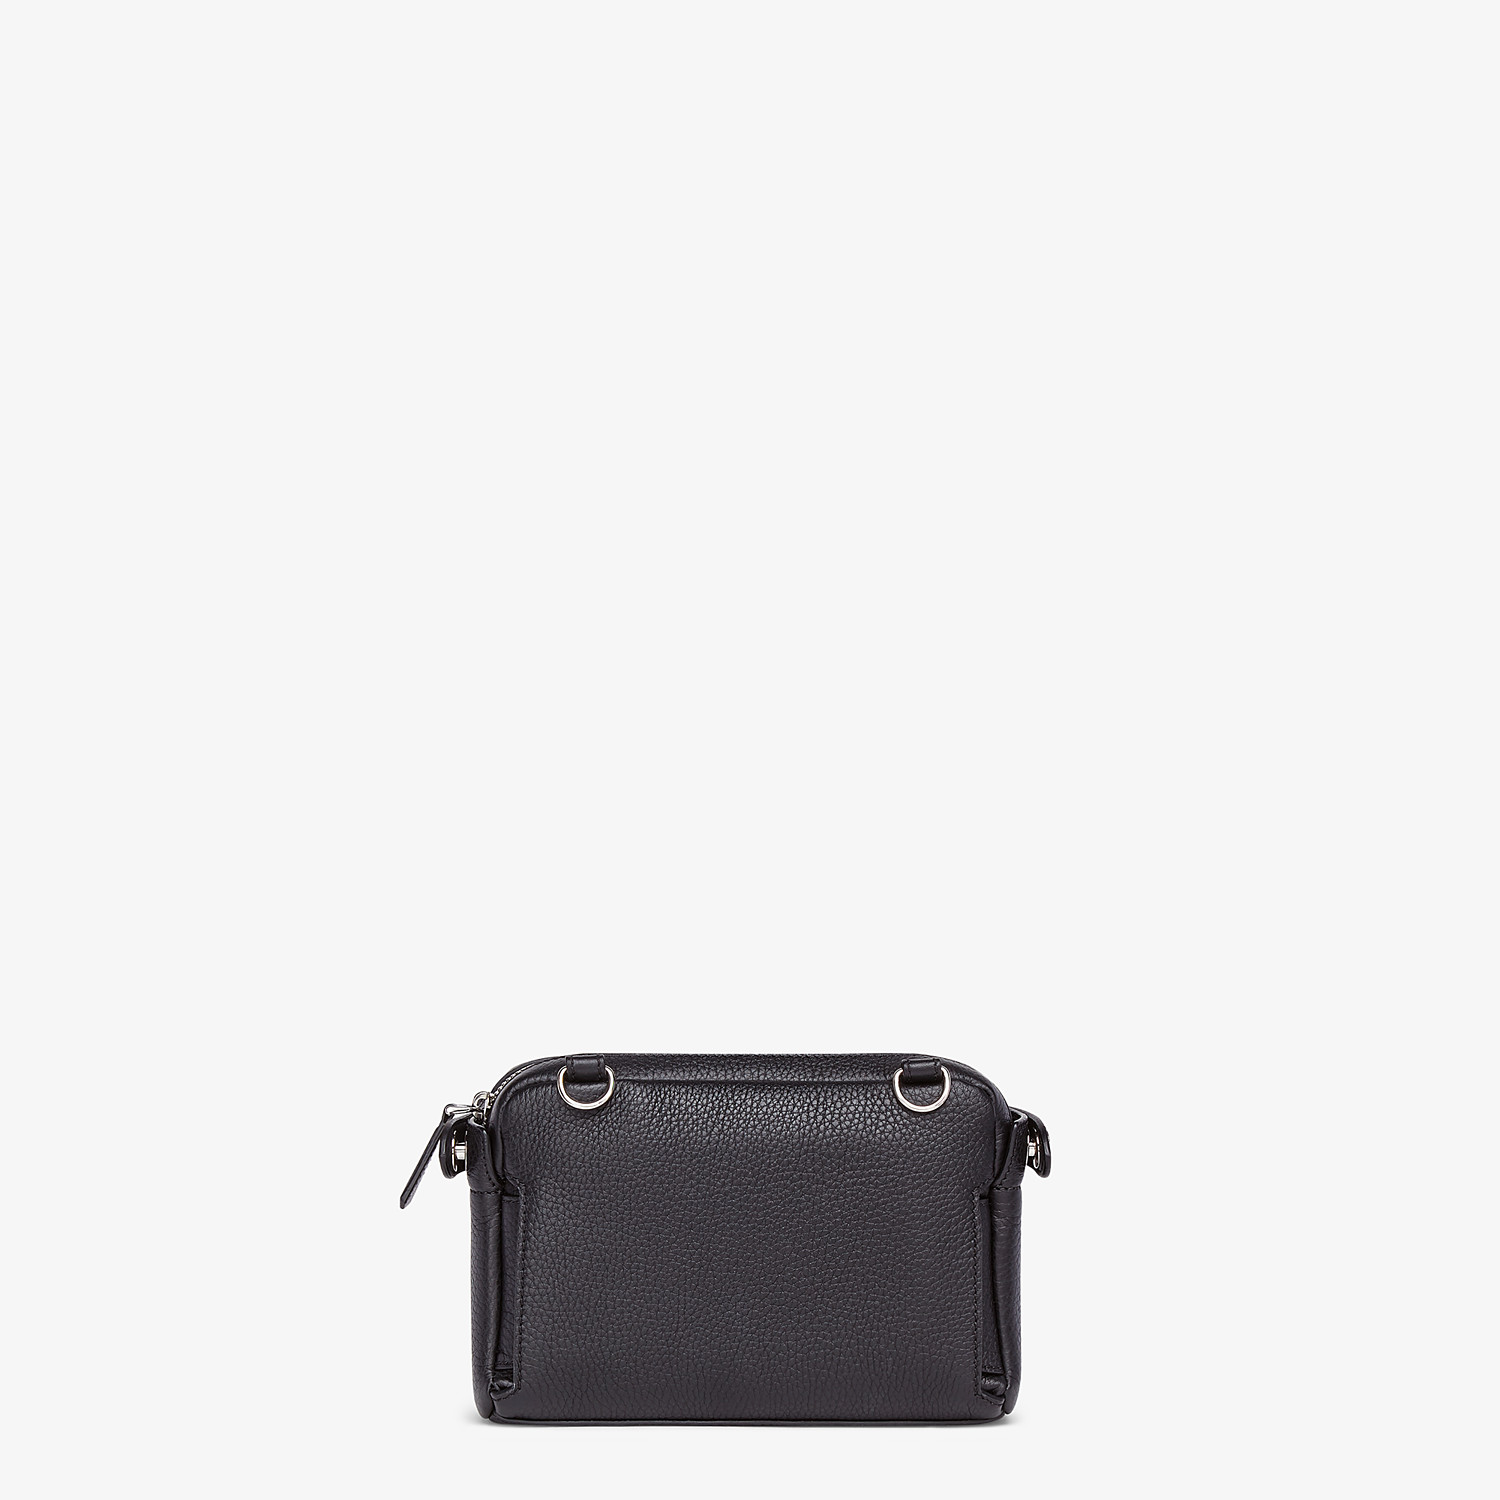 FENDI BELT BAG - Black leather belt bag - view 5 detail